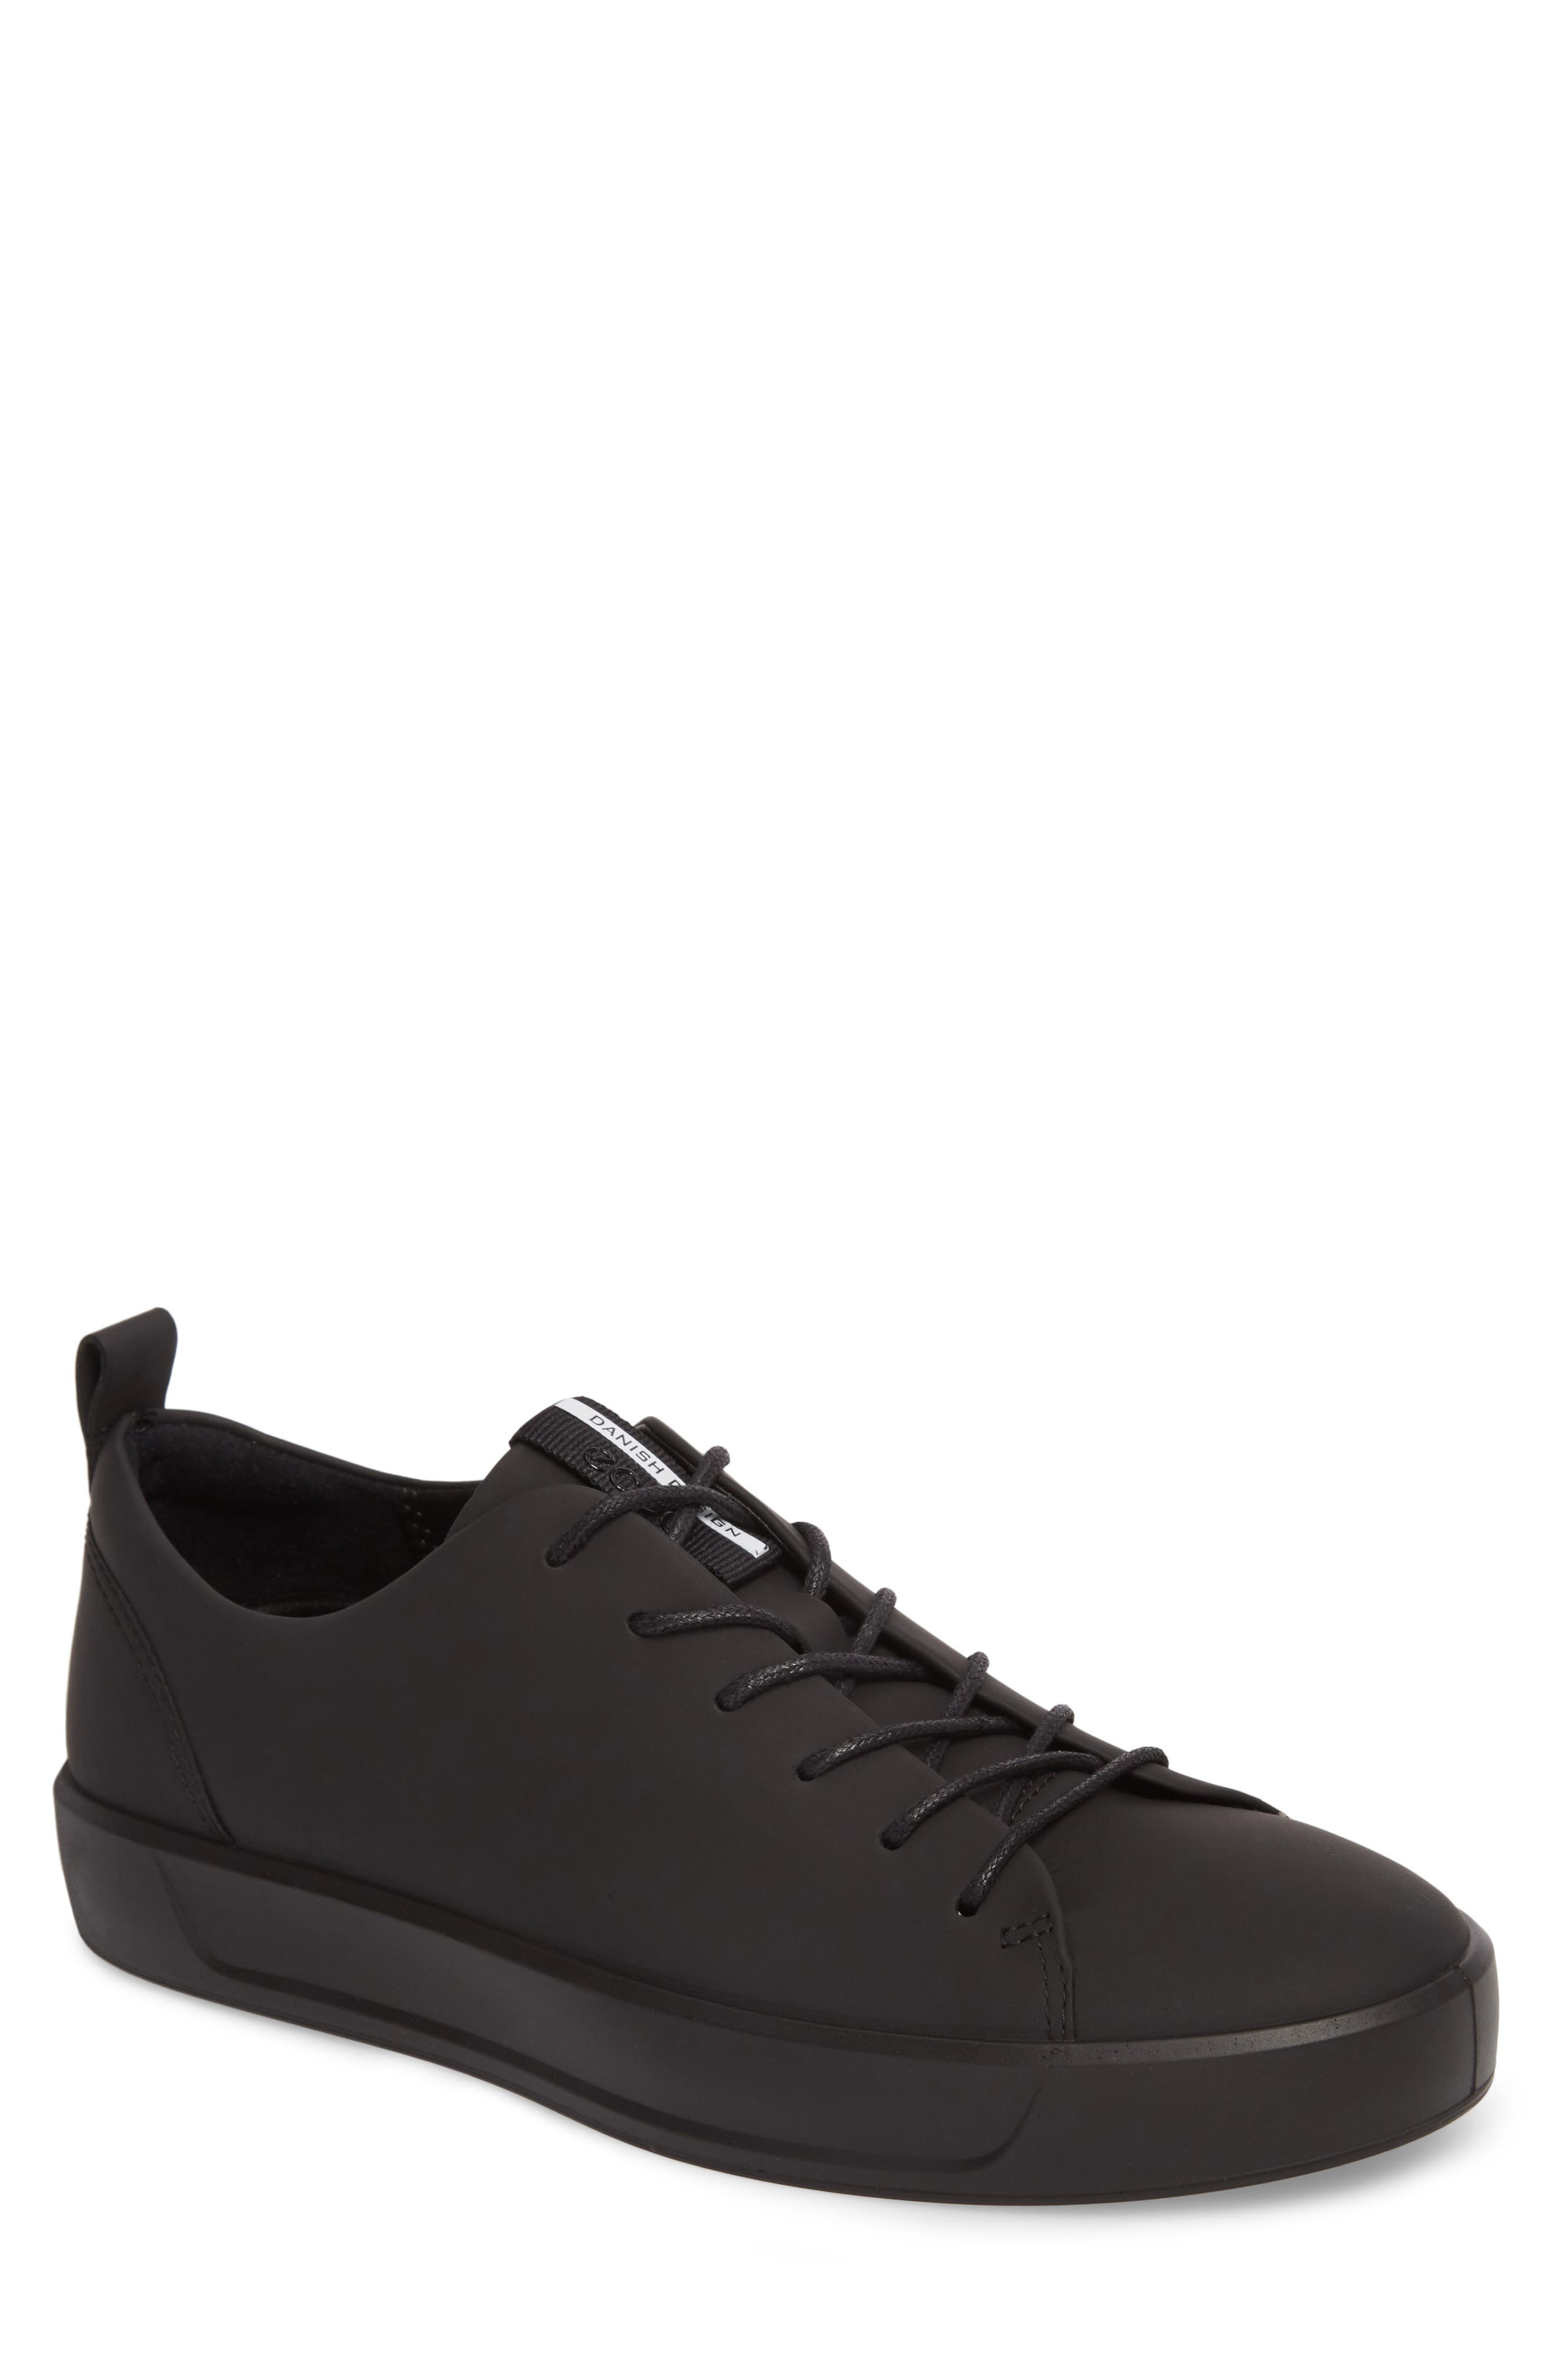 Soft 8 Sneaker,                         Main,                         color, BLACK LEATHER